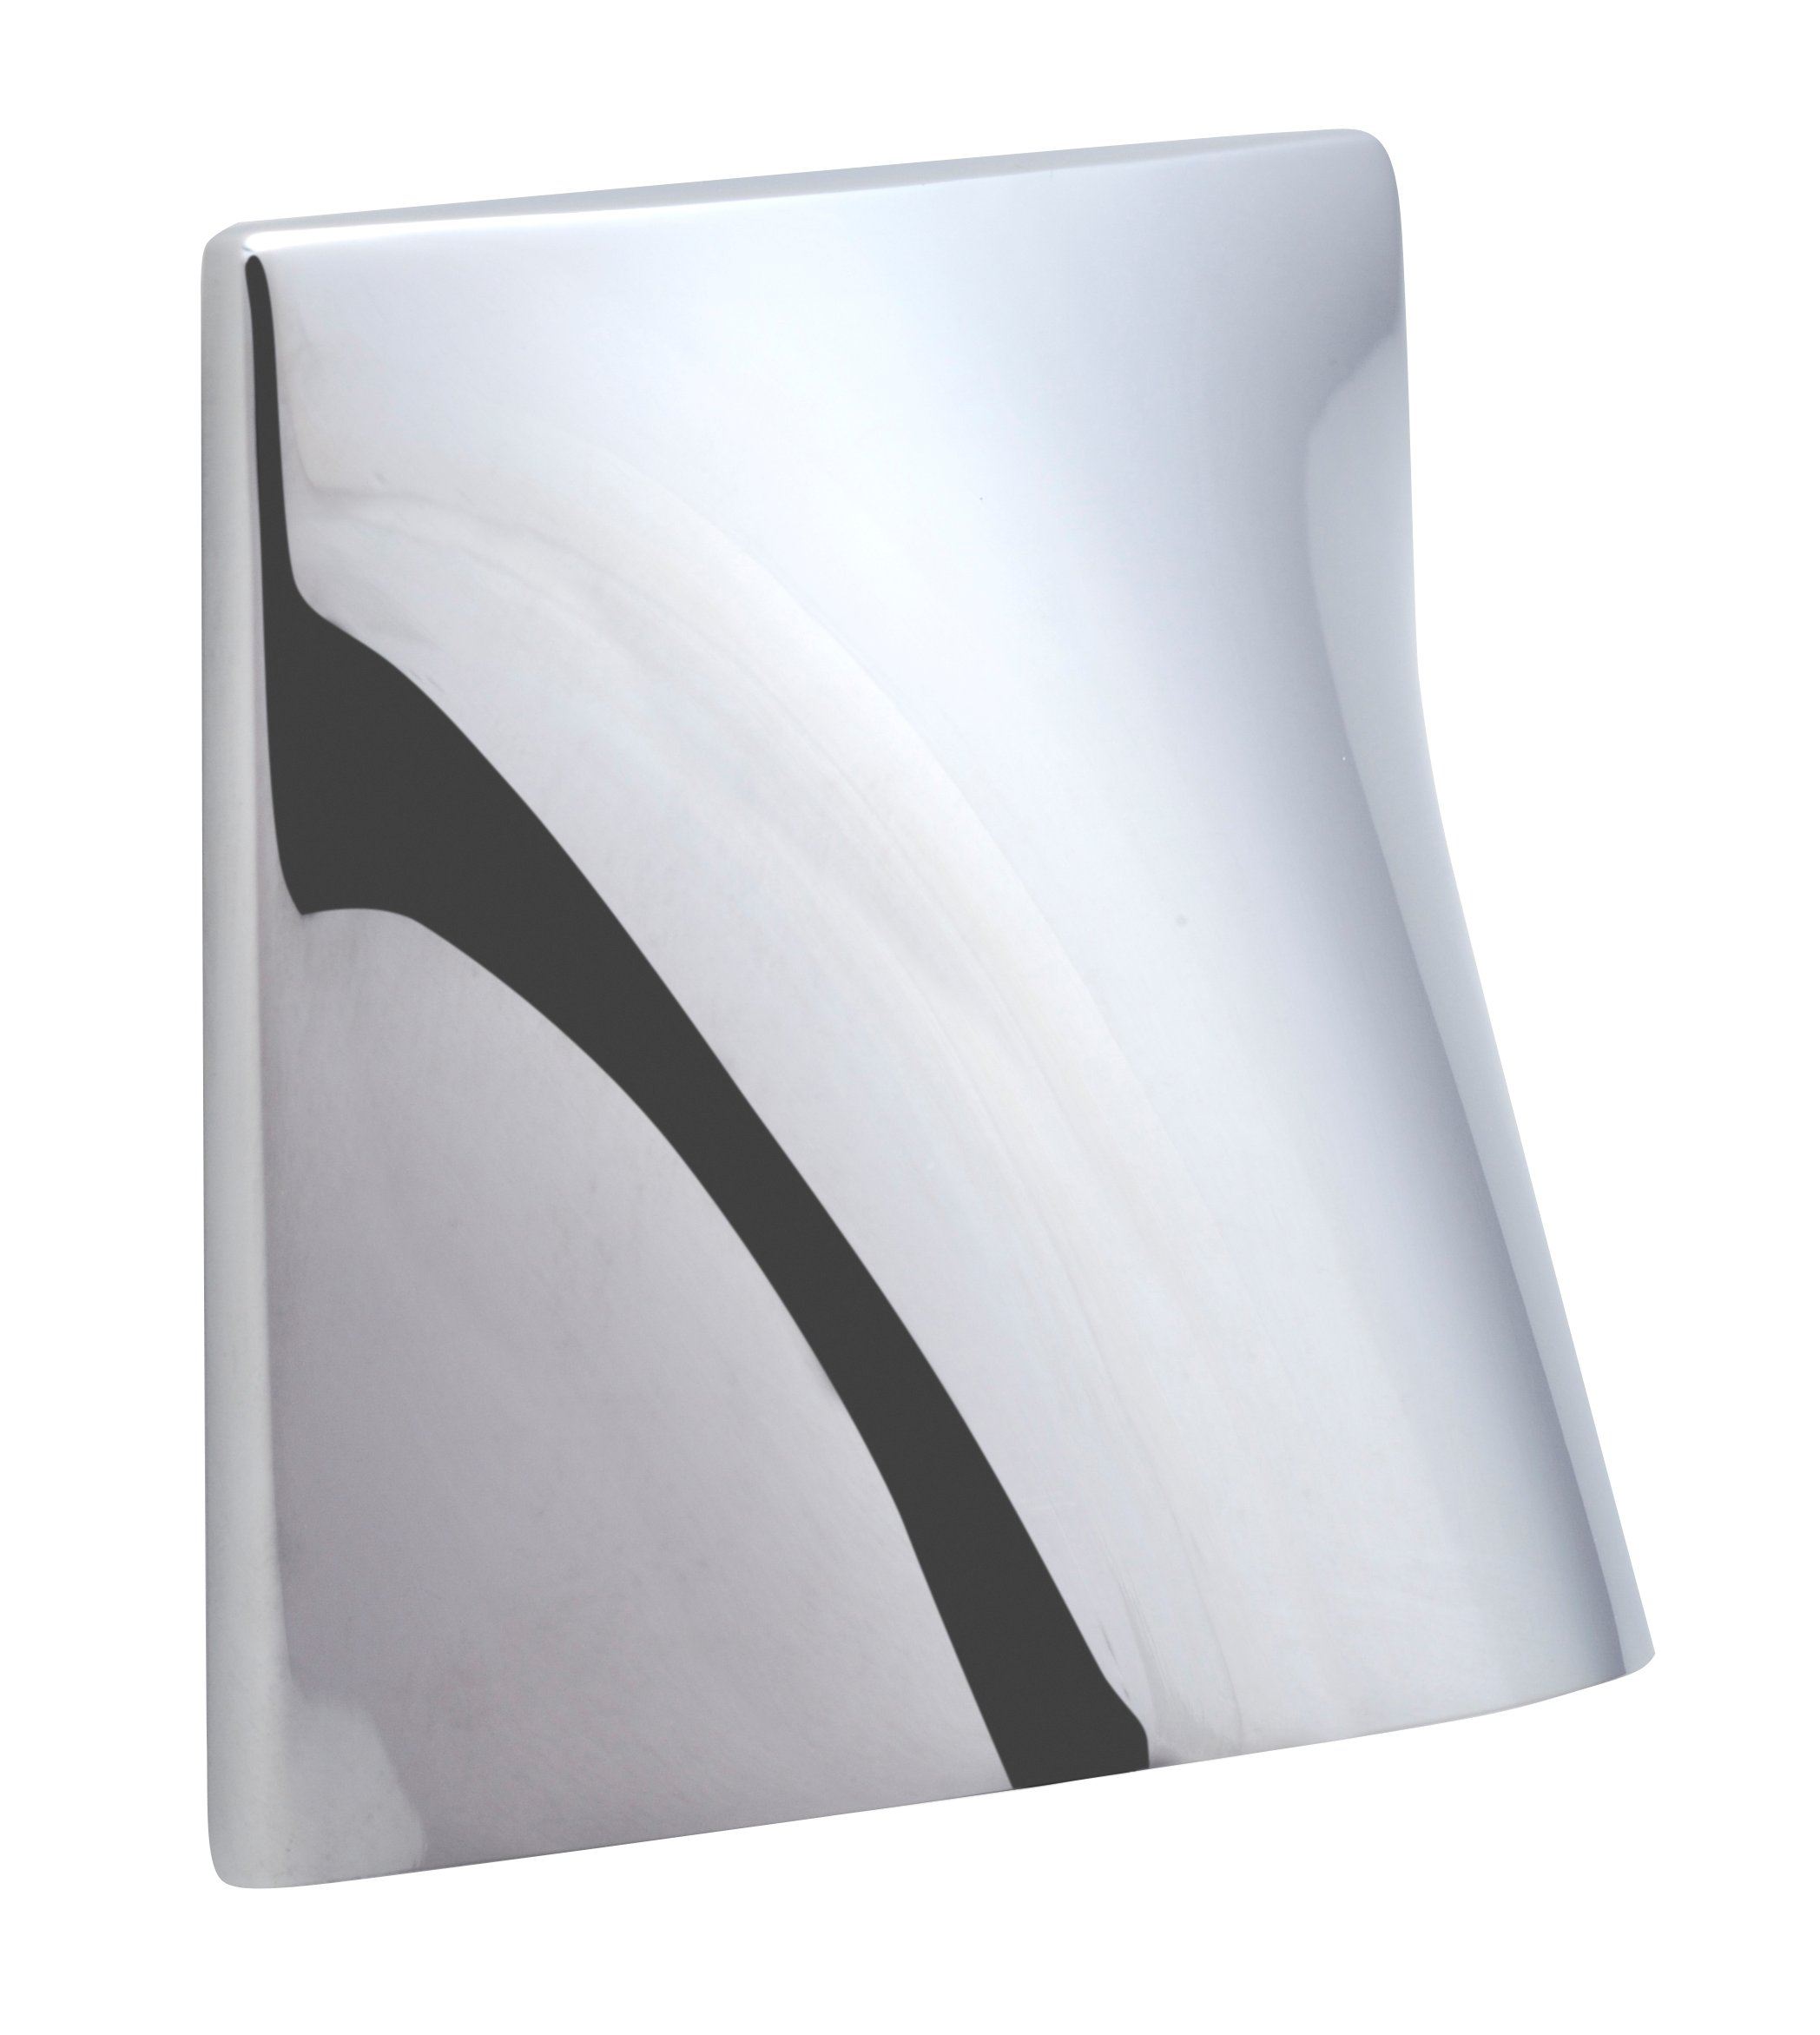 c135 sn modern collection cabinet knob satin nickel by cascadia cascadia hardware distributors c125 shaped